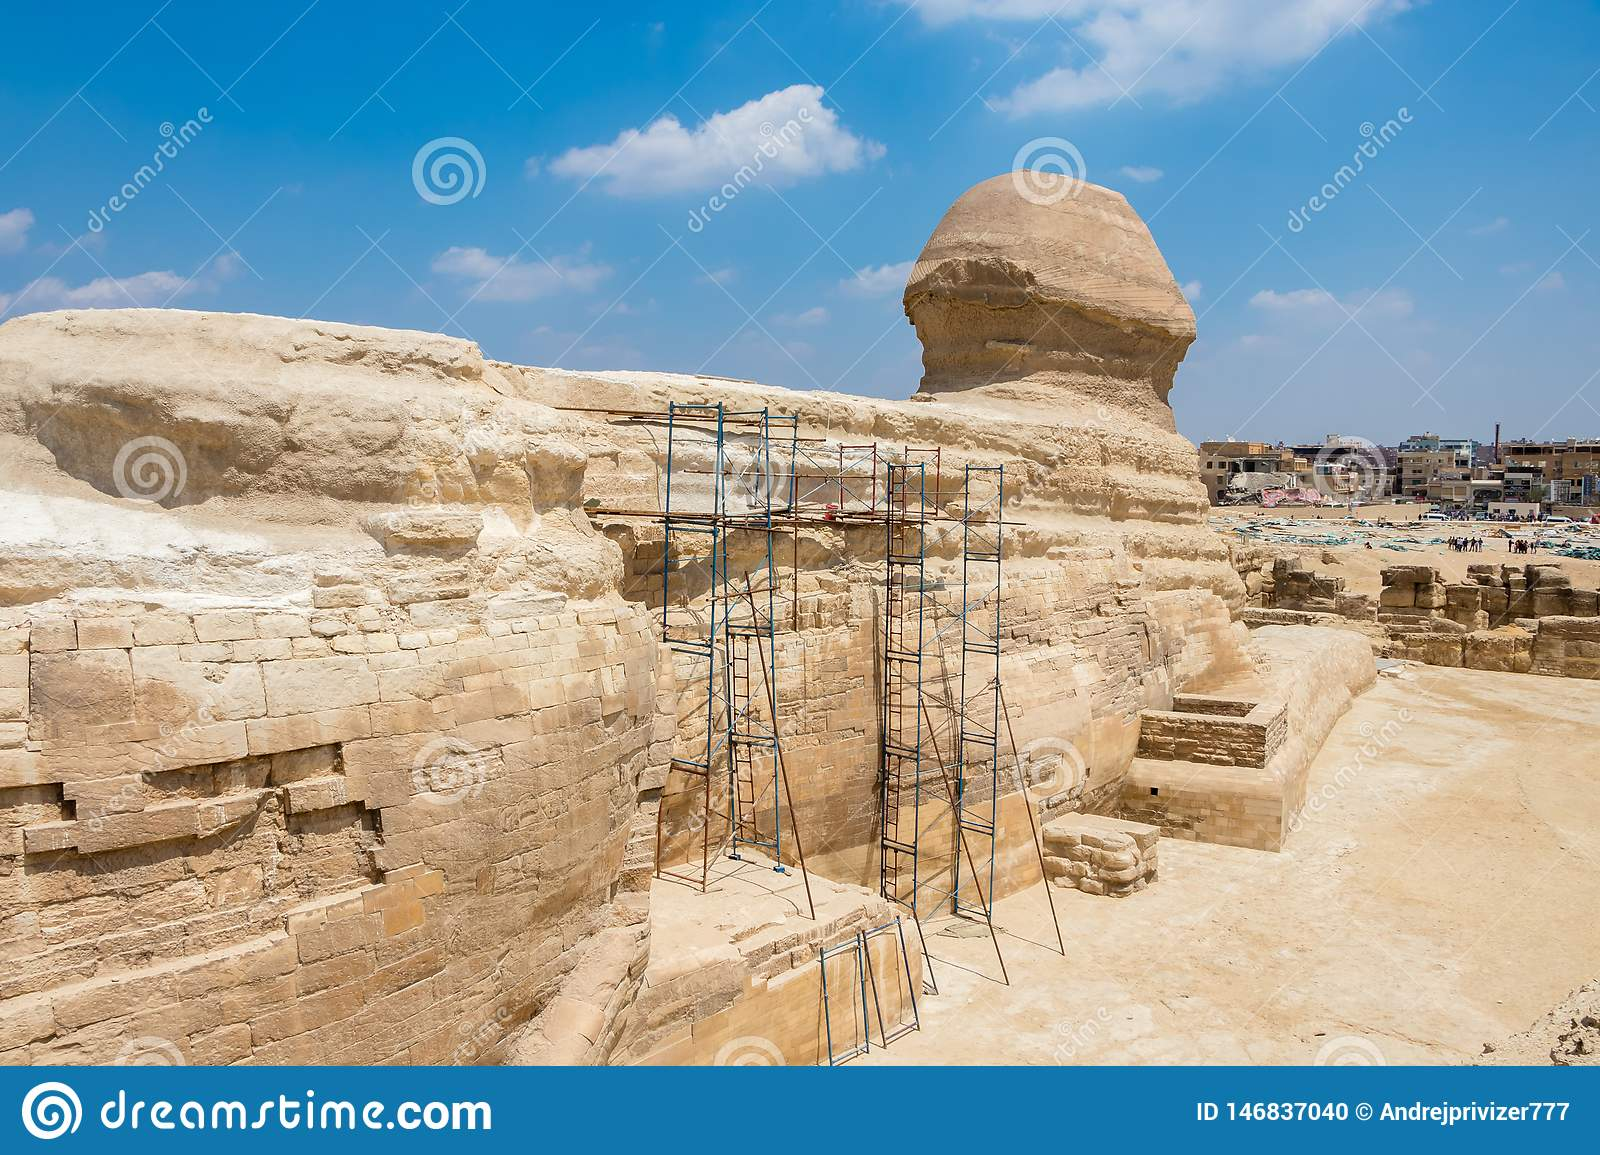 Famous Egyptian Sphinx at Giza from the back side